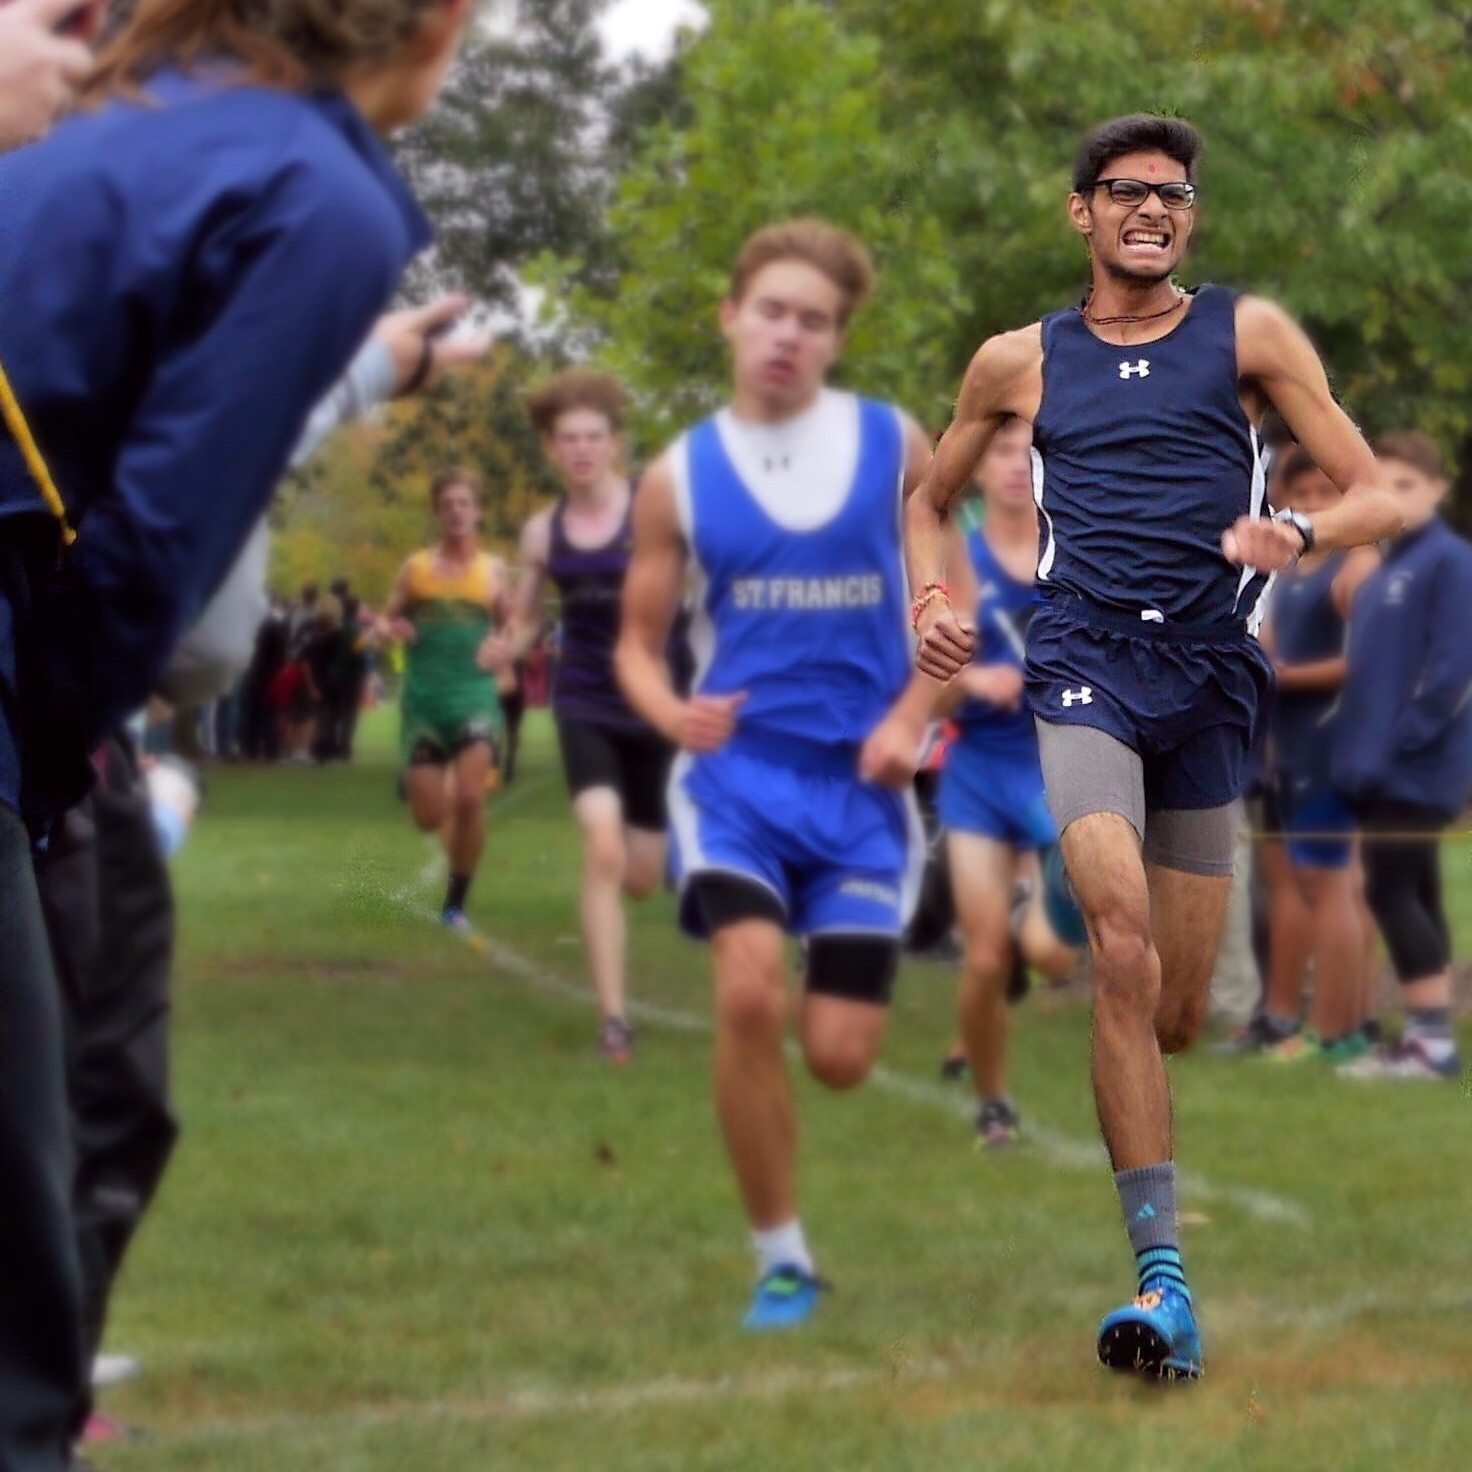 Senior Kamal Patel finished 40th out of 200 runners on Sept. 29 at Community Park, Lisle.